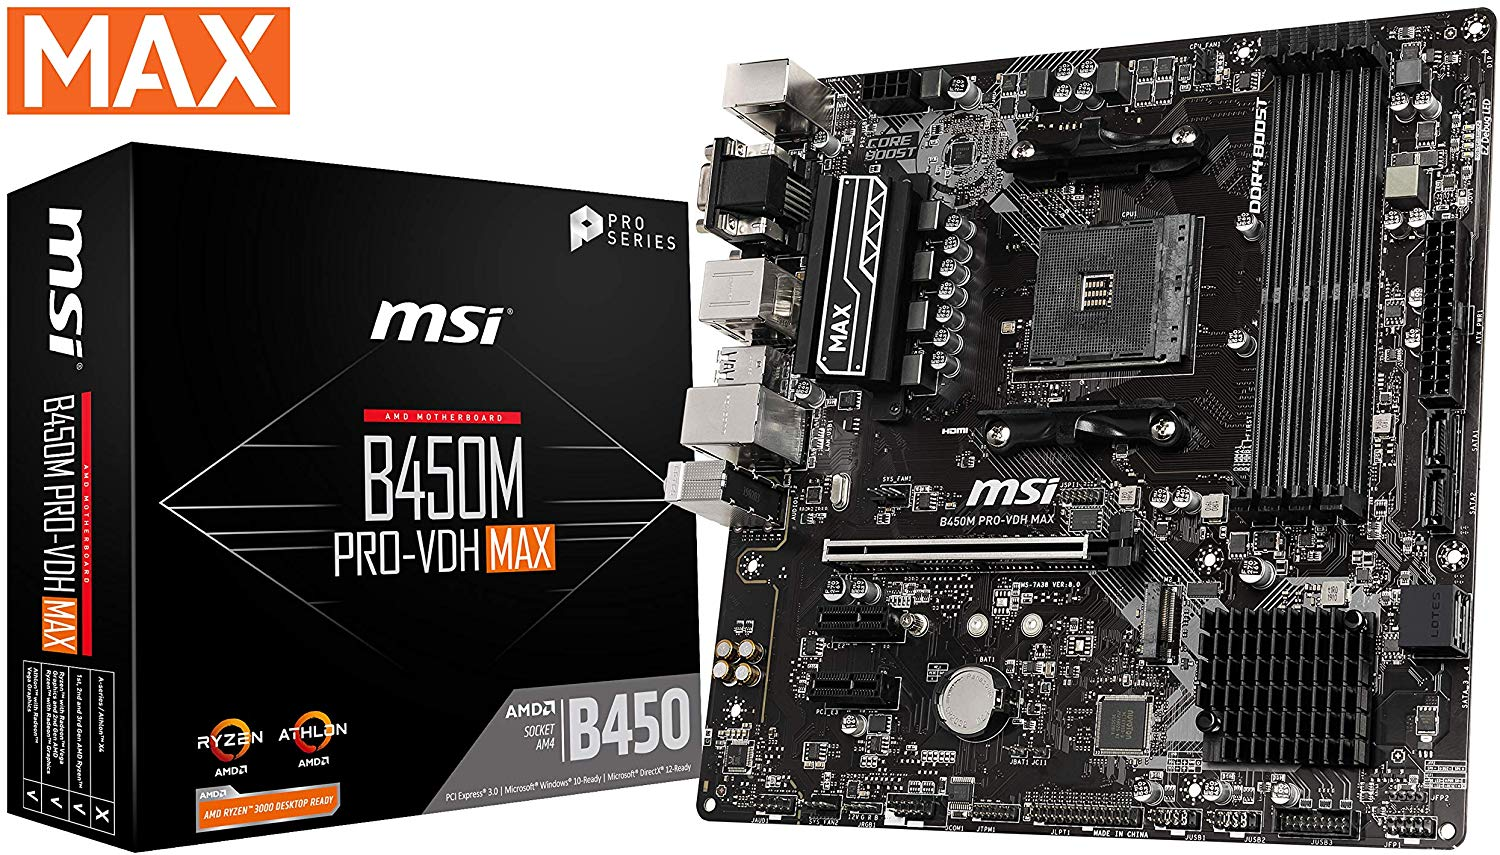 3 Motherboard - Best $500 PC Build 2020